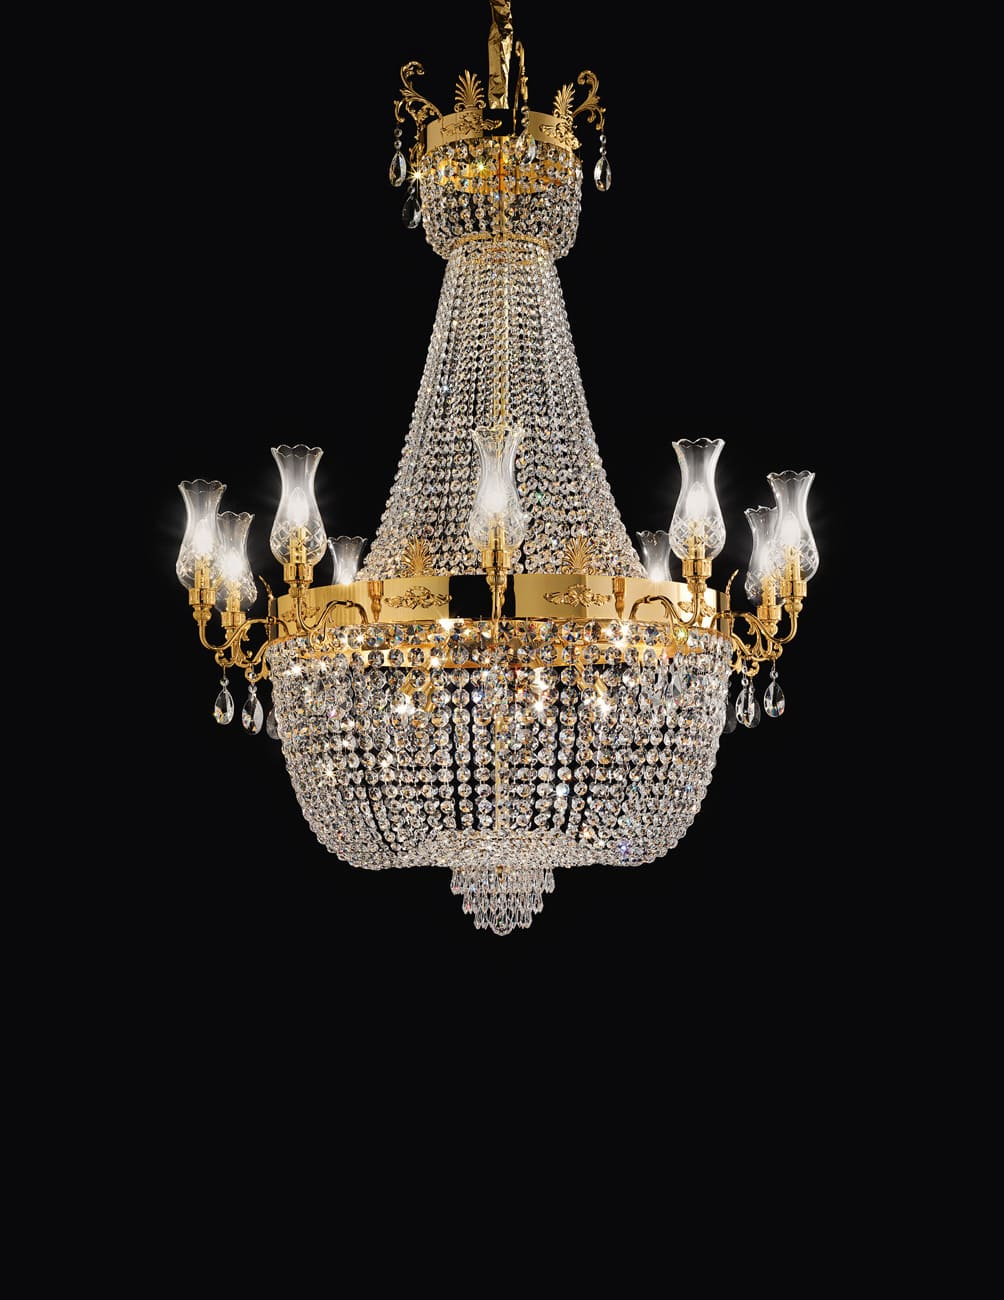 decorative lighting chandeliers 70